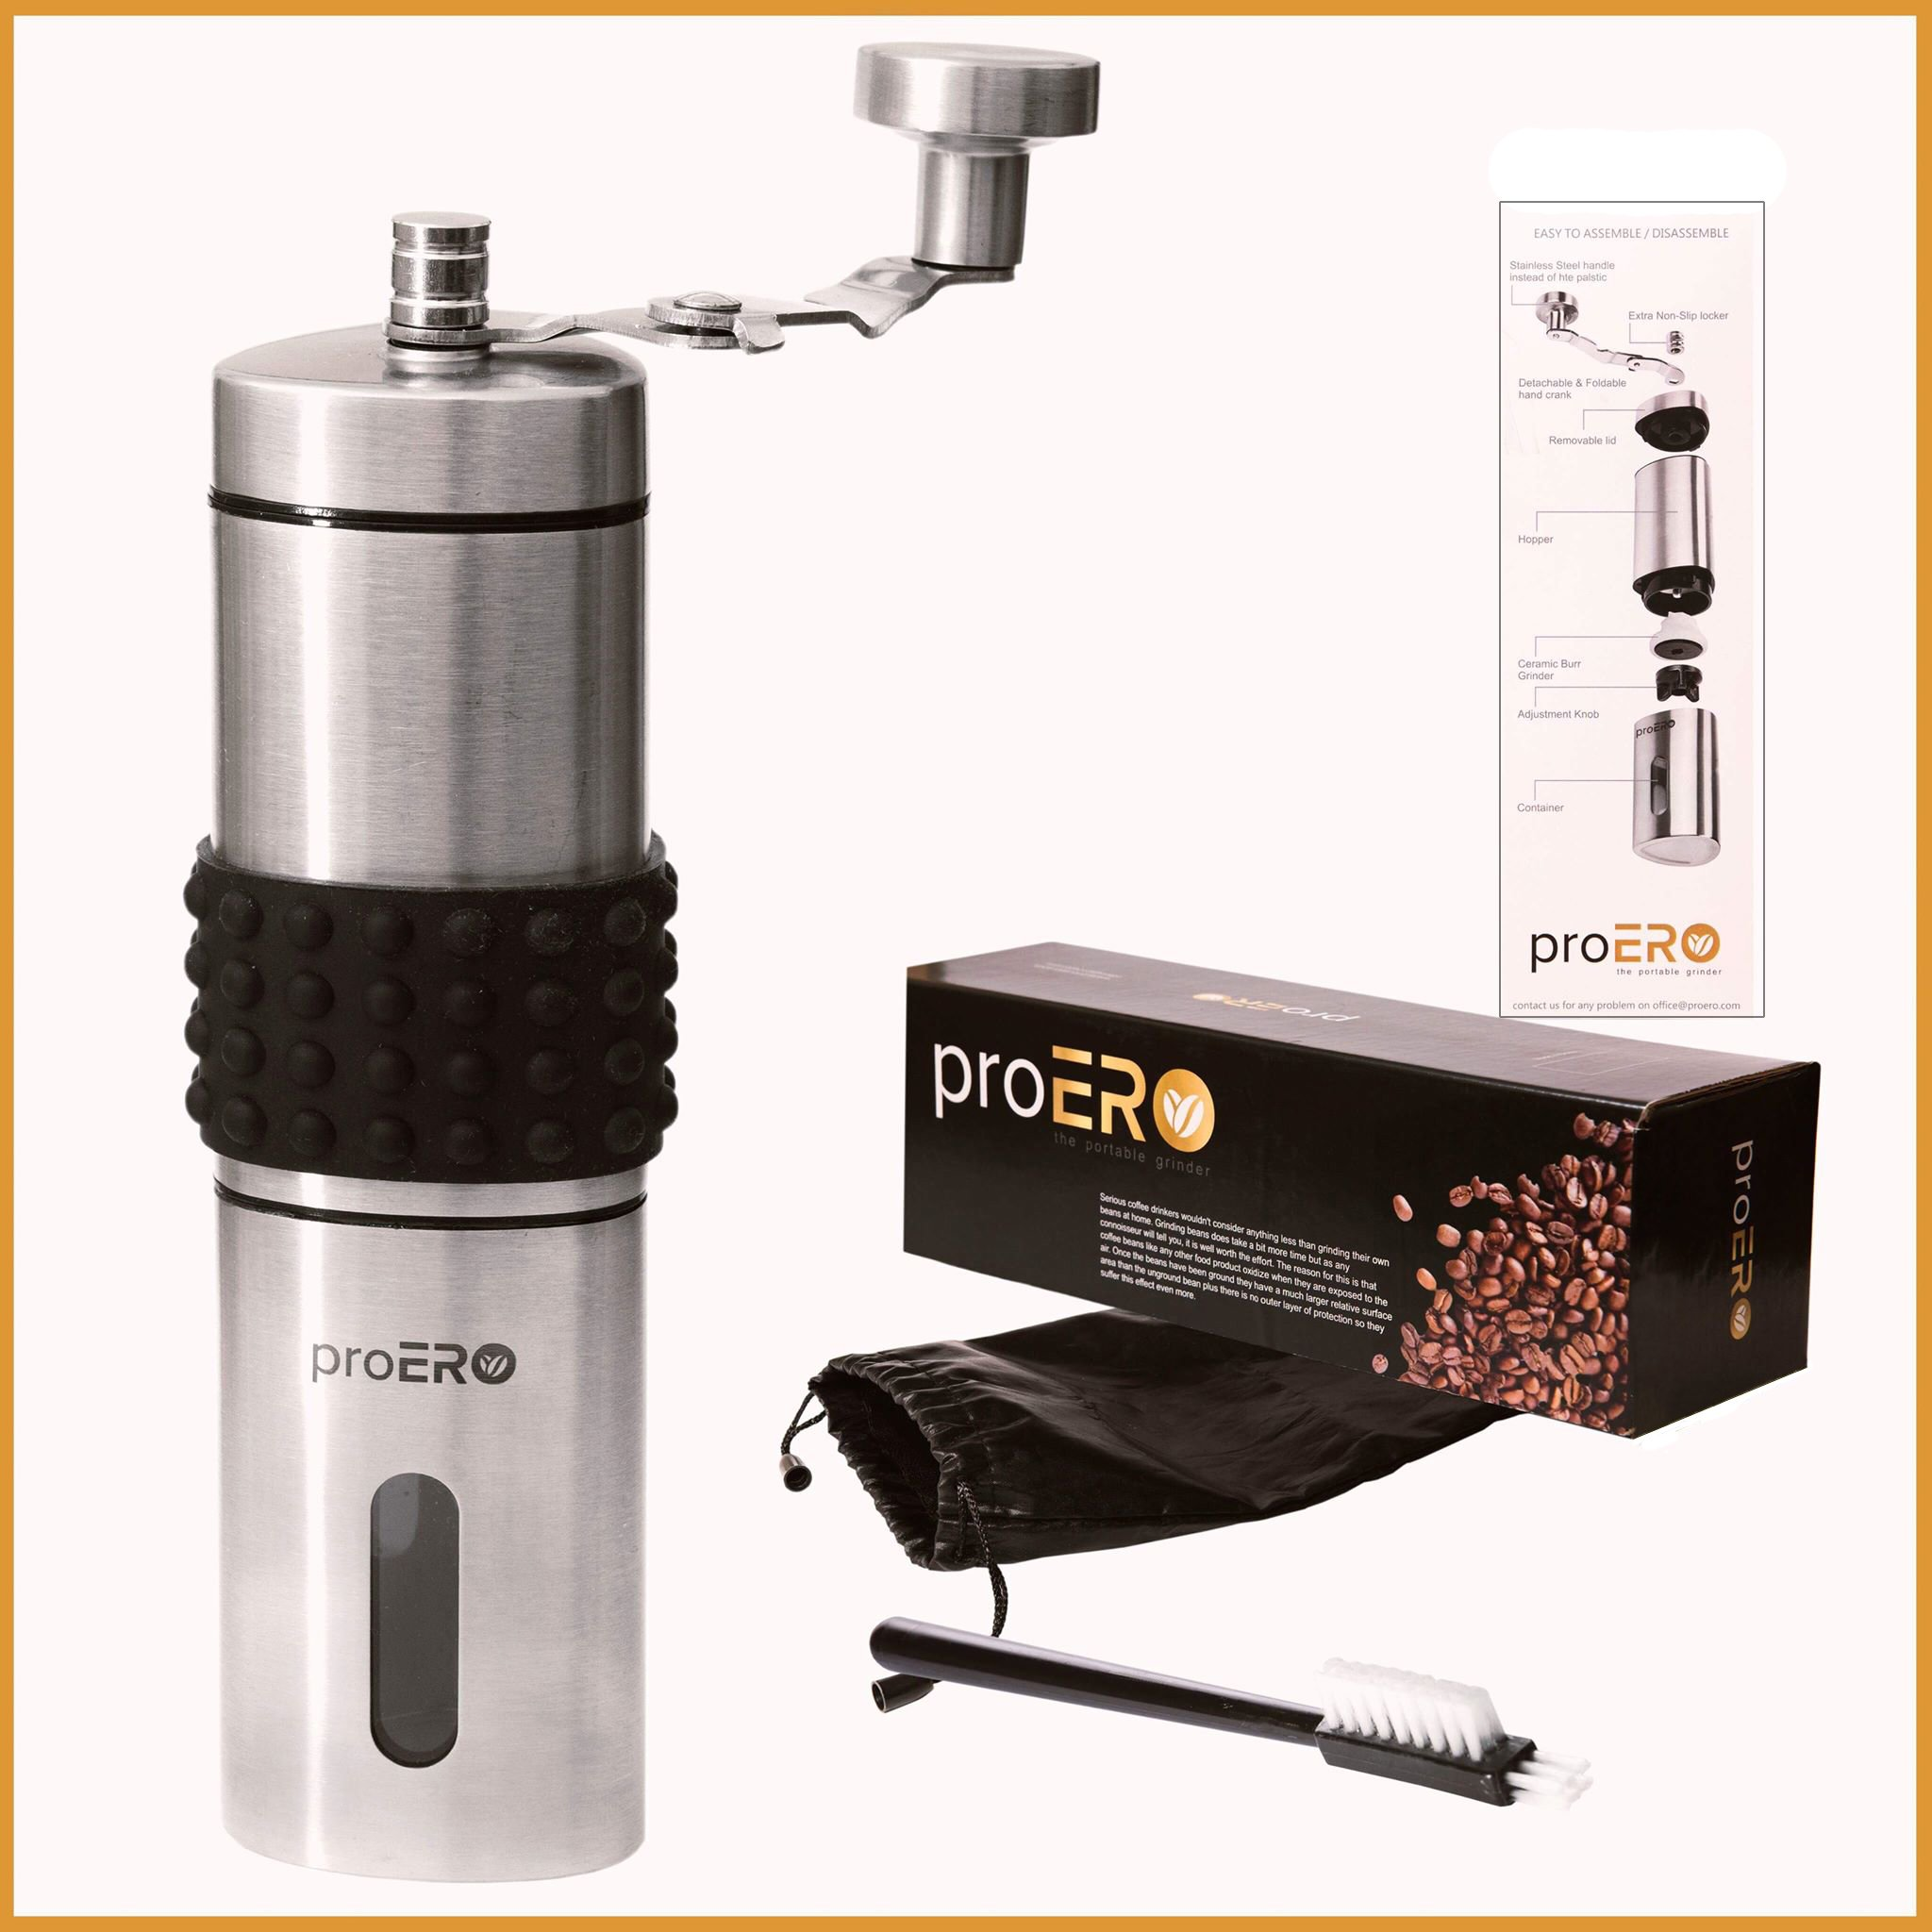 proERO Manual Coffee Grinder – Stainless Steel Coffee Hand Mill with Conical Ceramic Burr, Built-in Grind Selector with 18 Click Settings and Sealed Window for French Press, Turkish, Handheld Mini, K